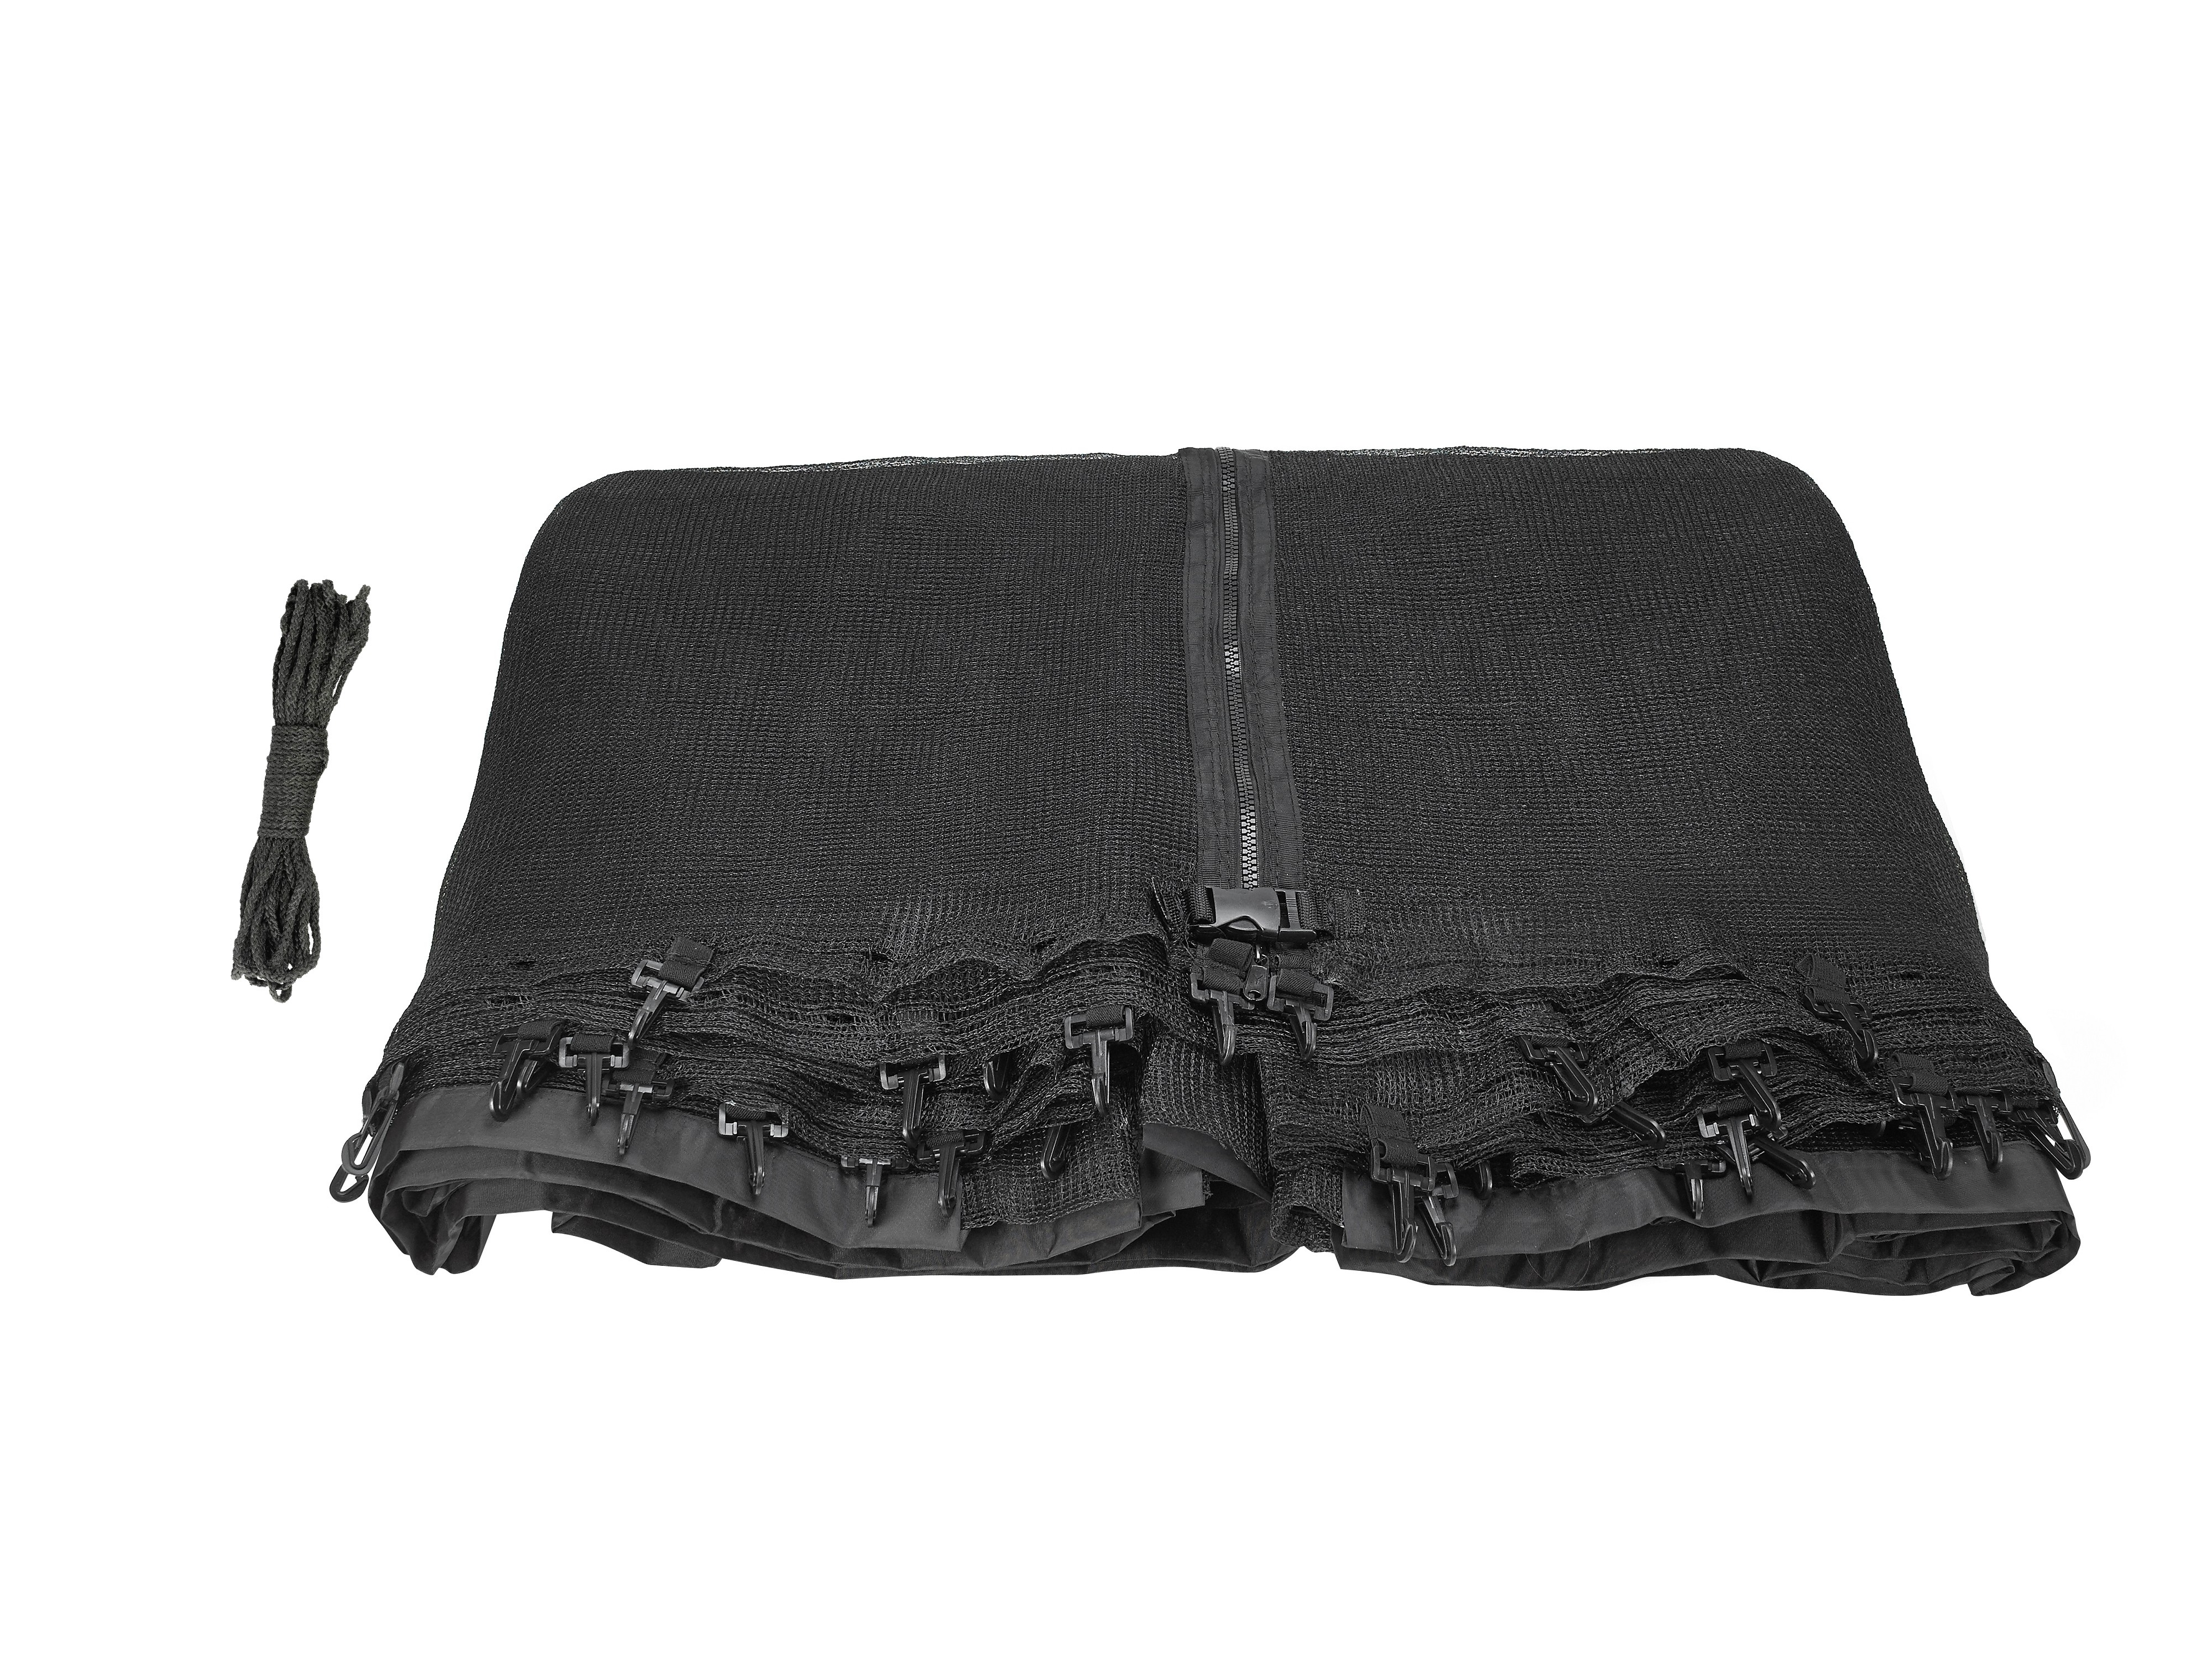 Trampoline Replacement Enclosure Net for Upper Bounce 15 x 9 Ft Rectangle Trampoline